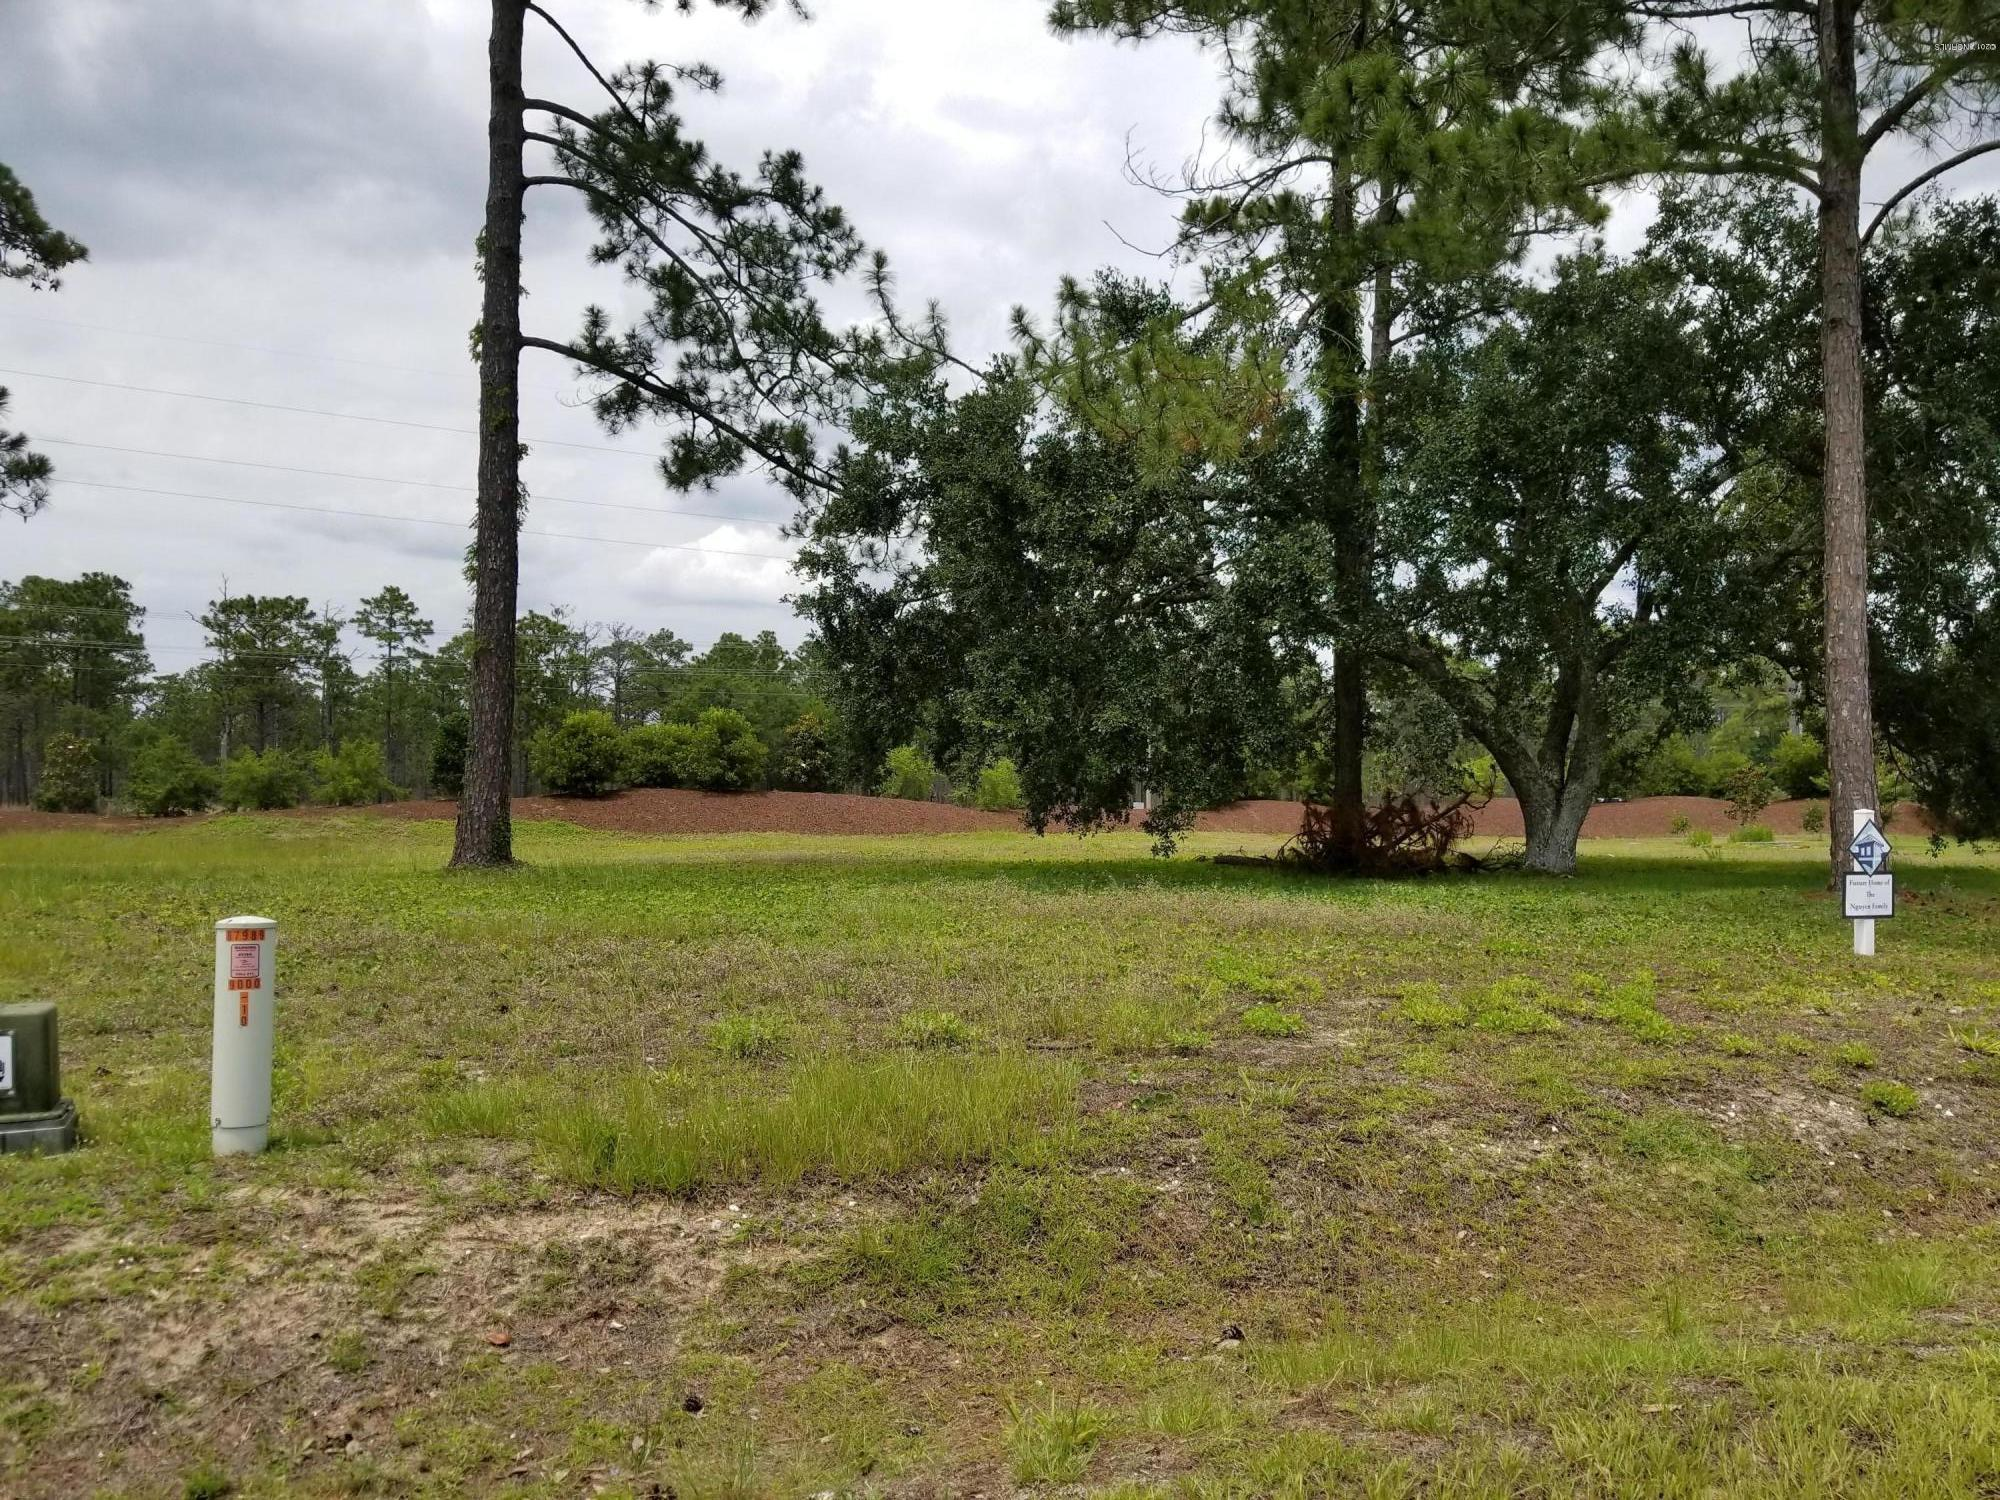 305 Seafarer Street, 100070141, Newport, Vacant Land / Lot,  for sale, Gina Albritton, Realty World - First Coast Realty